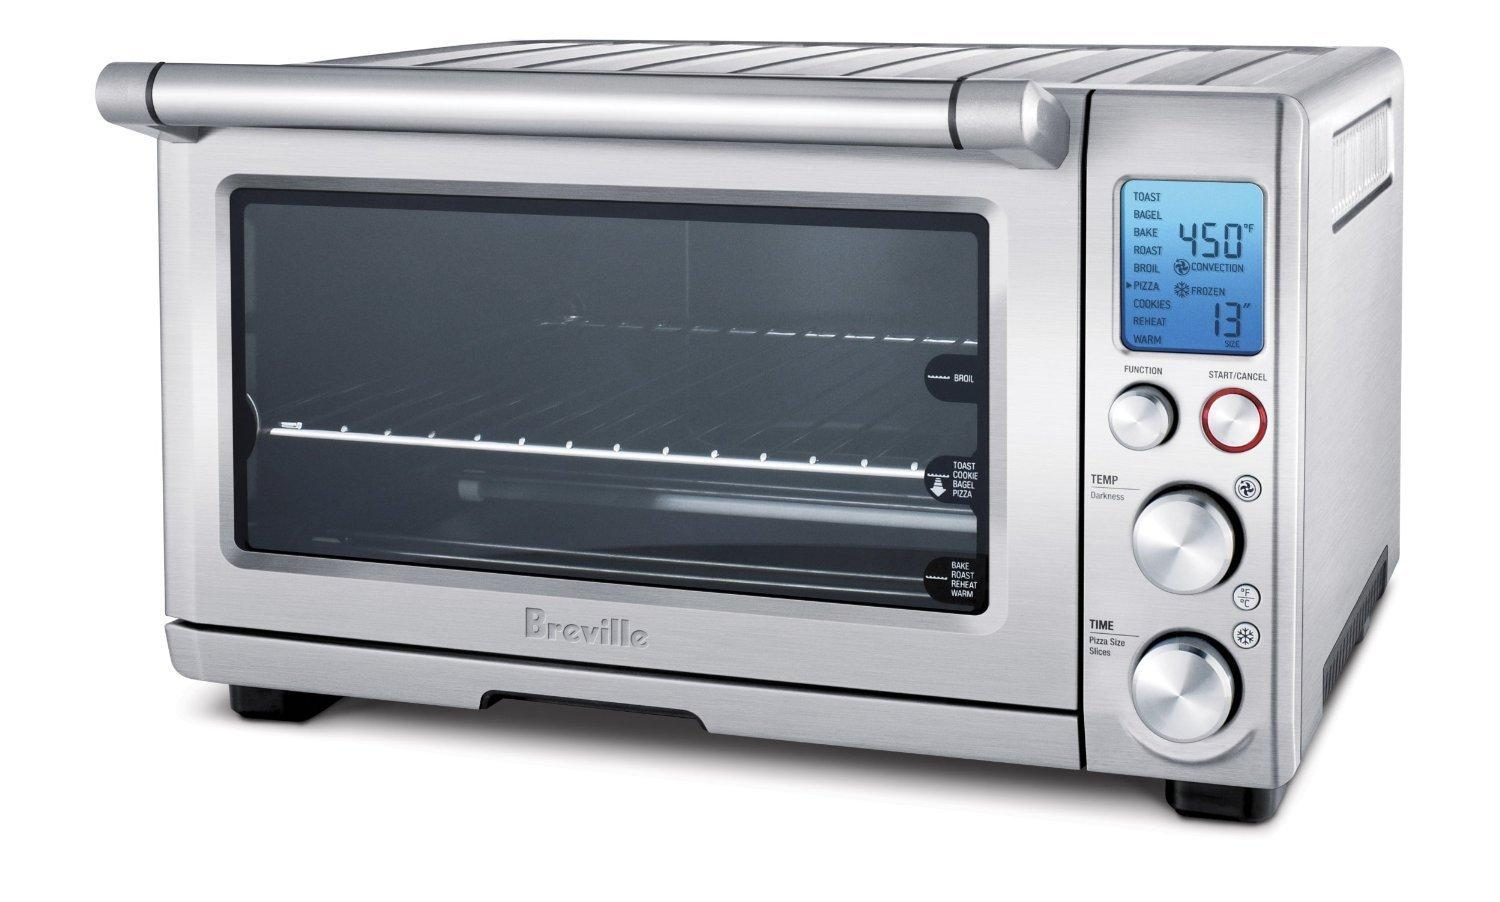 $212.46 The Smart Oven by Breville